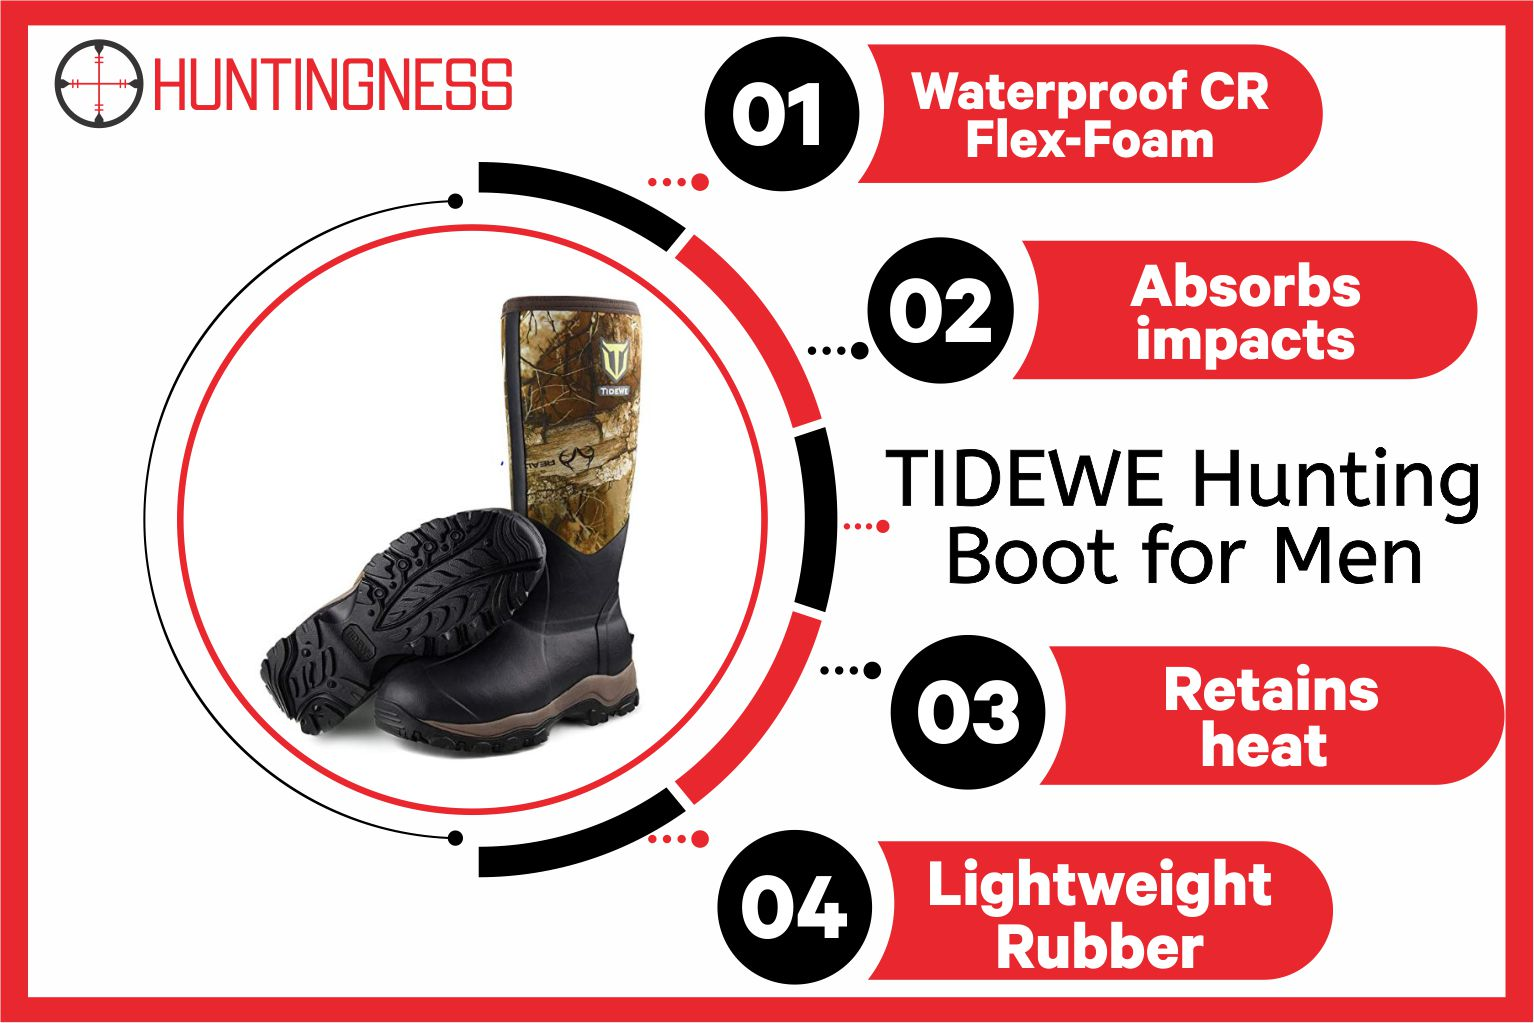 TIDEWE Hunting Boot for Men, Insulated Waterproof Durable 16 Men's Hunting Boot, 6mm Neoprene and Rubber Outdoor Boot Realtree Edge Camo(400Gram & Standard) infographic